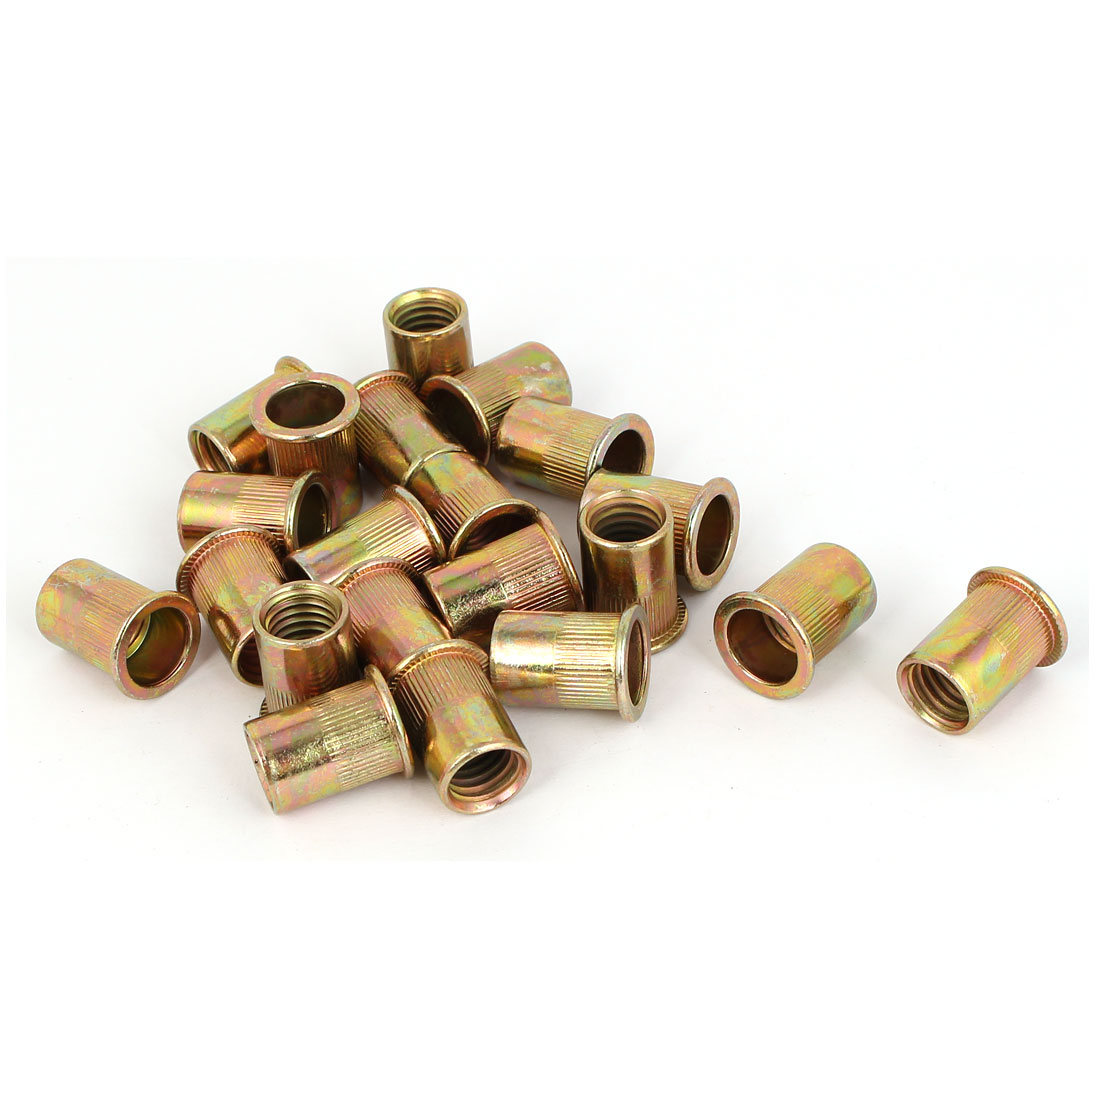 Straight Knurled Reduced Head Rivet Nut Insert Nutsert Bronze Tone M12x24mm 20pcs